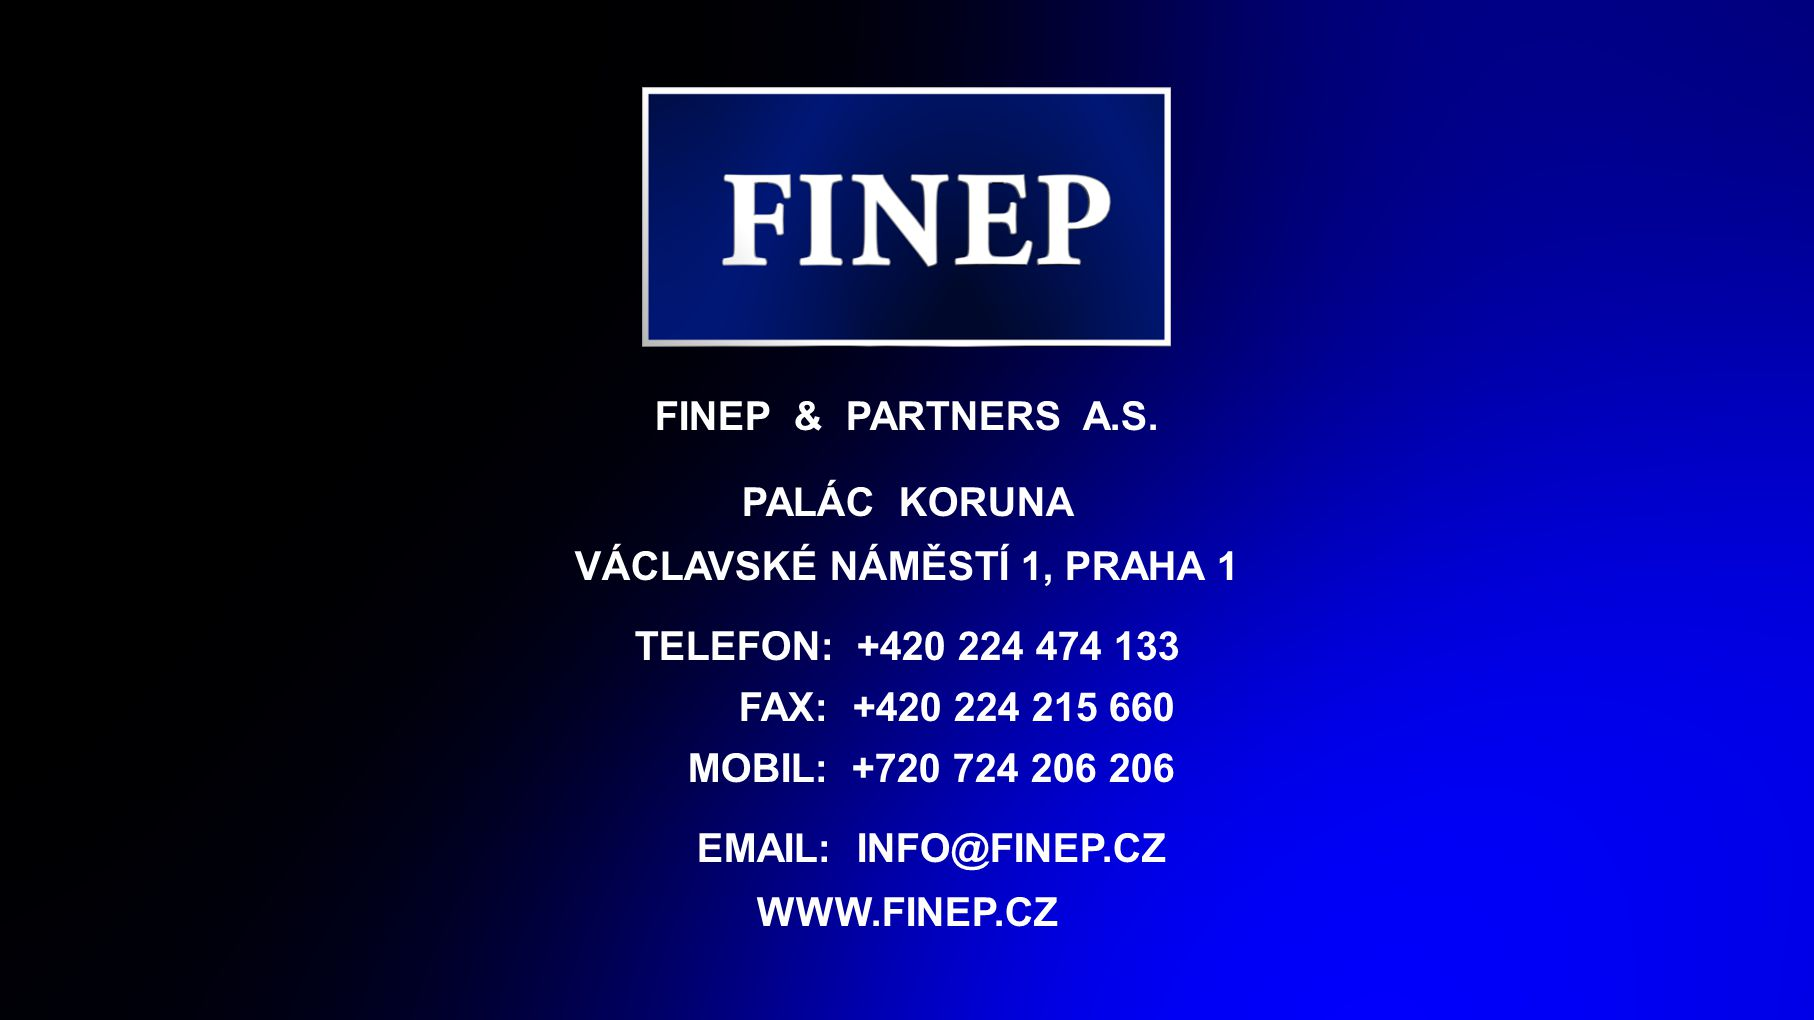 FINEP & PARTNERS A.S.